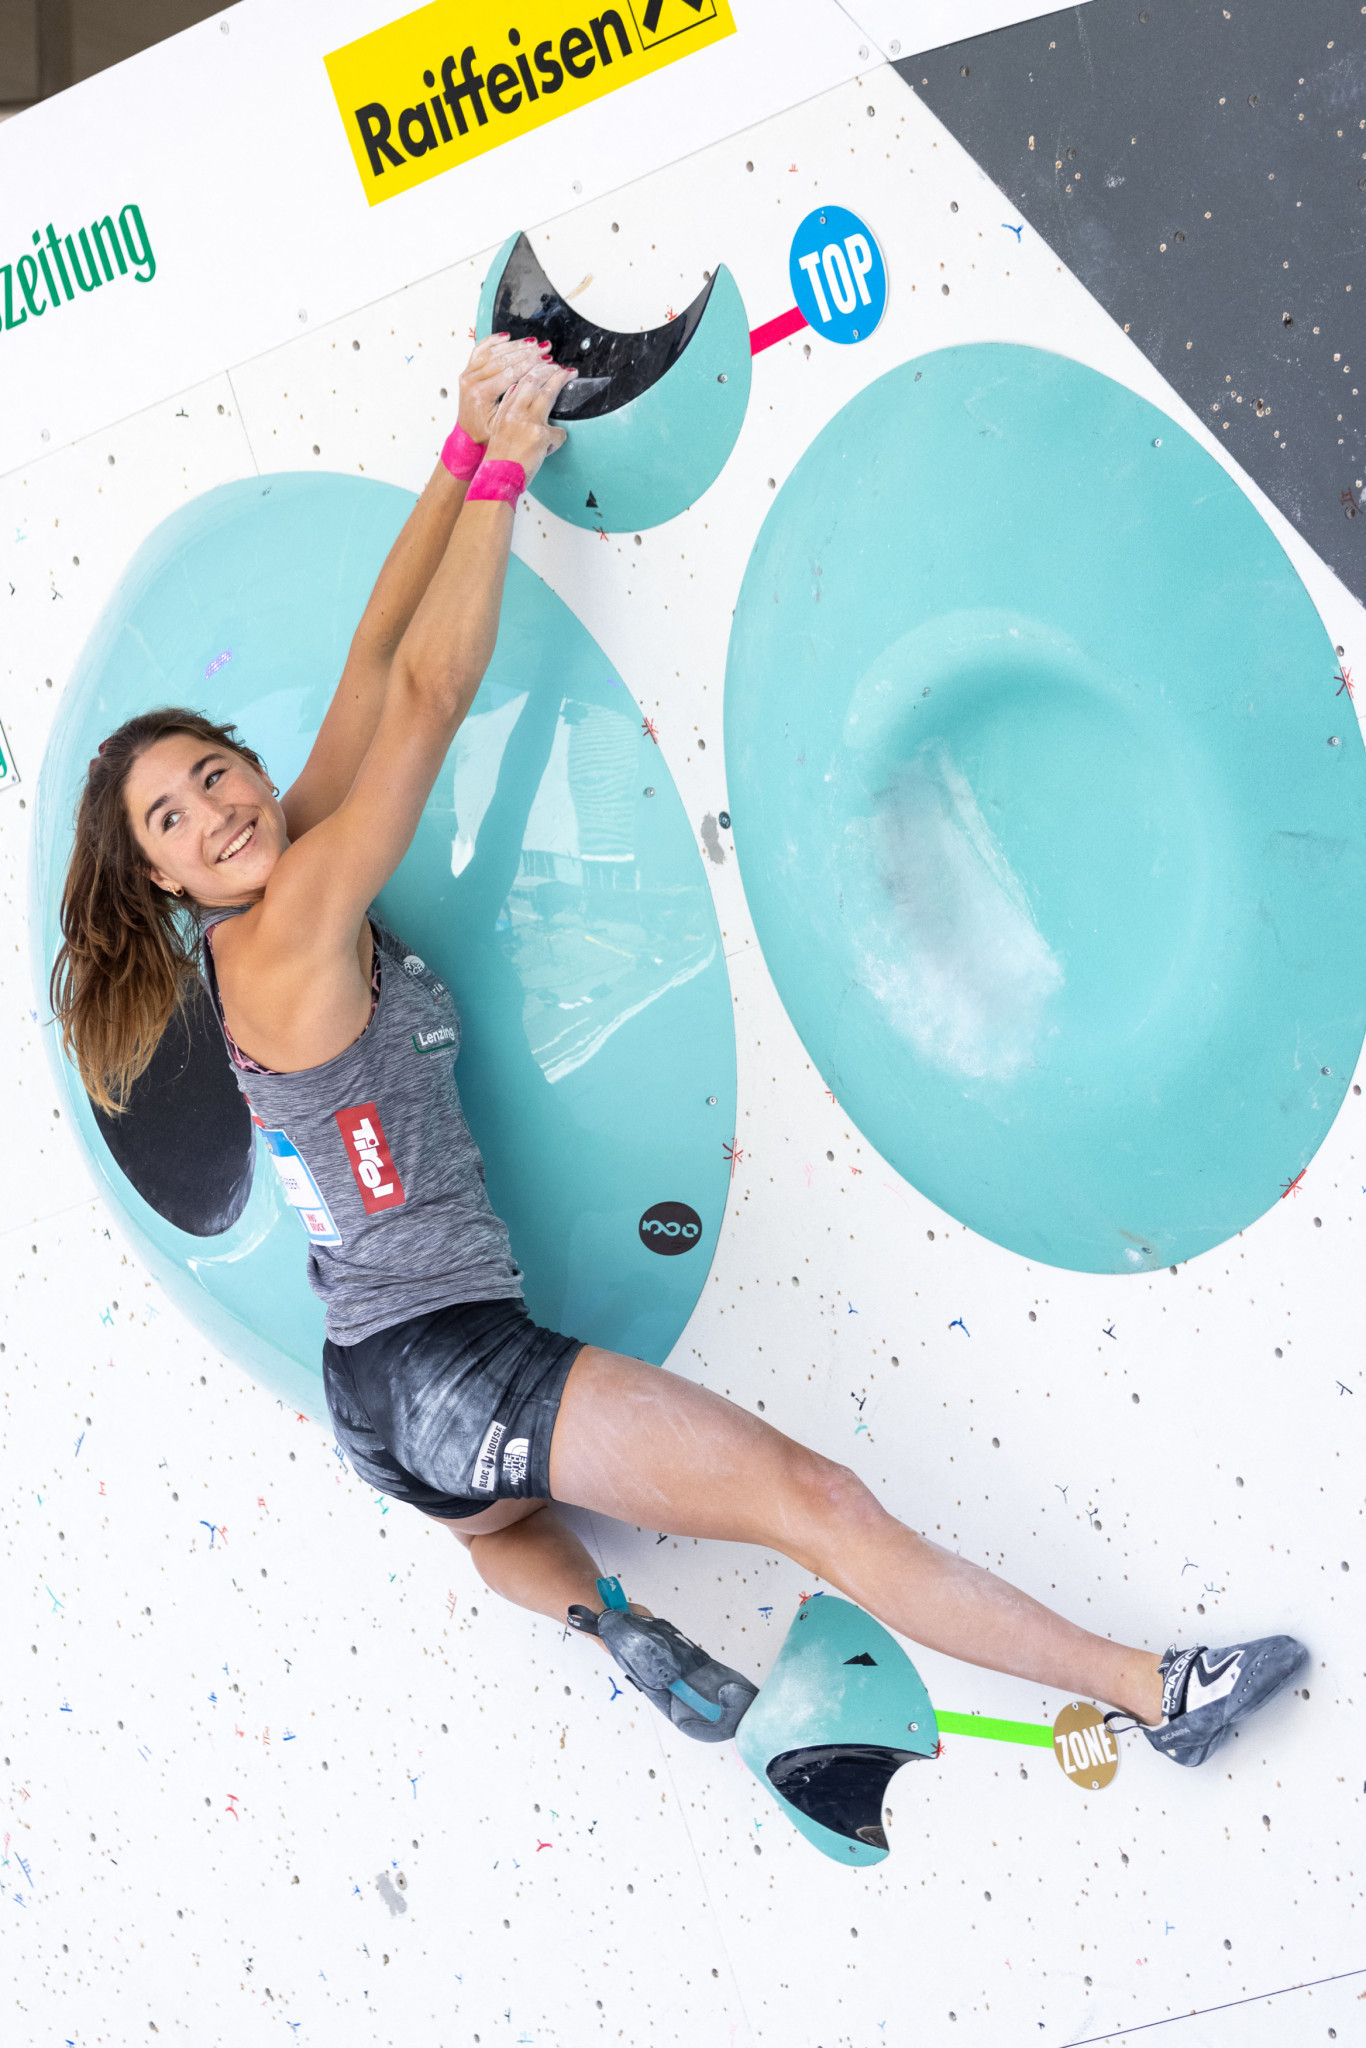 IFSC issue second apology of season to climber for objectification in broadcast